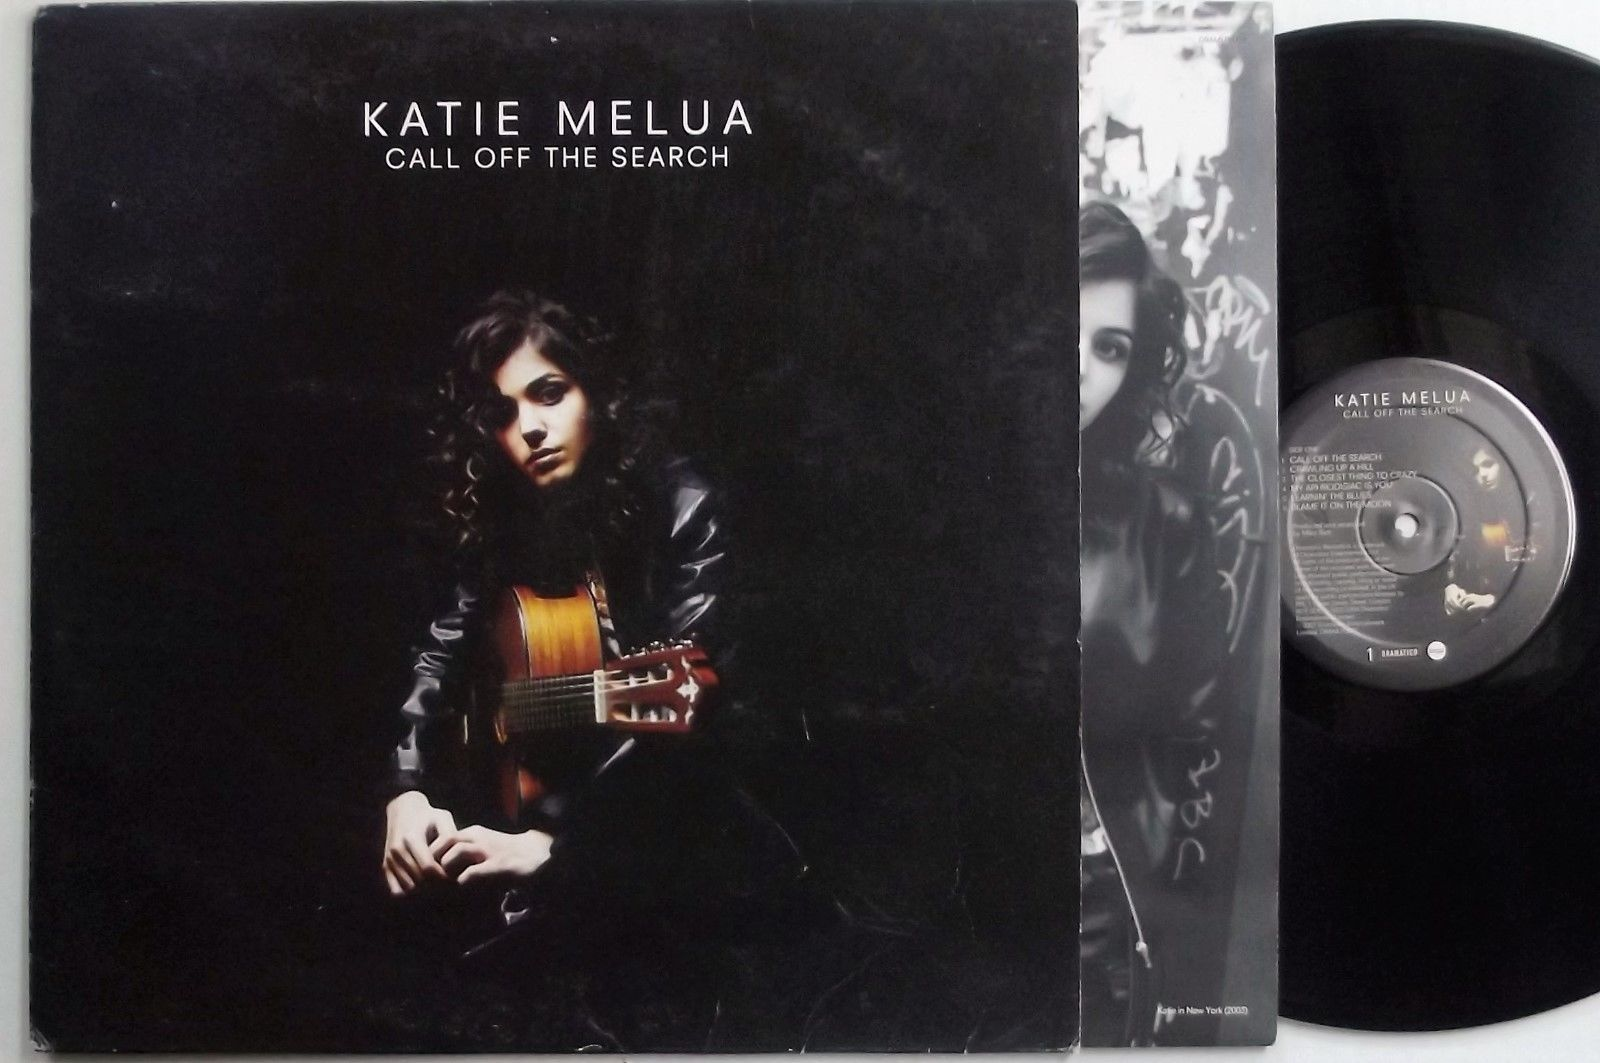 KATIE MELUA Call Off The Search 2004 LP VG https://t.co/gLirEMFhOD https://t.co/SEx3pctBoI